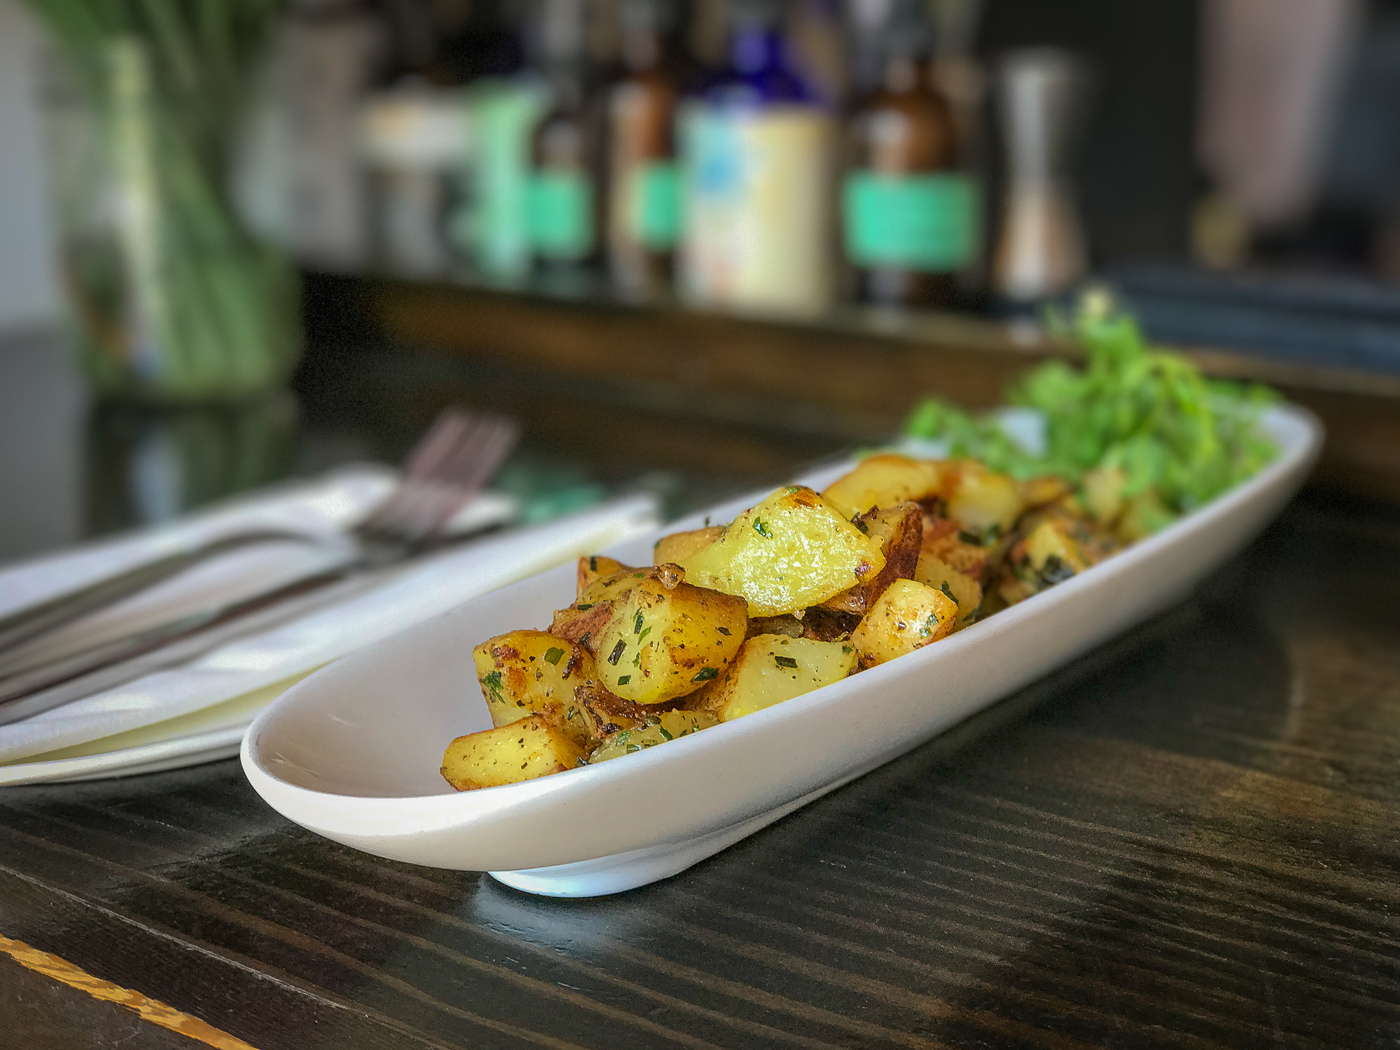 An oblong plate filled with roasted potatoes on a bar